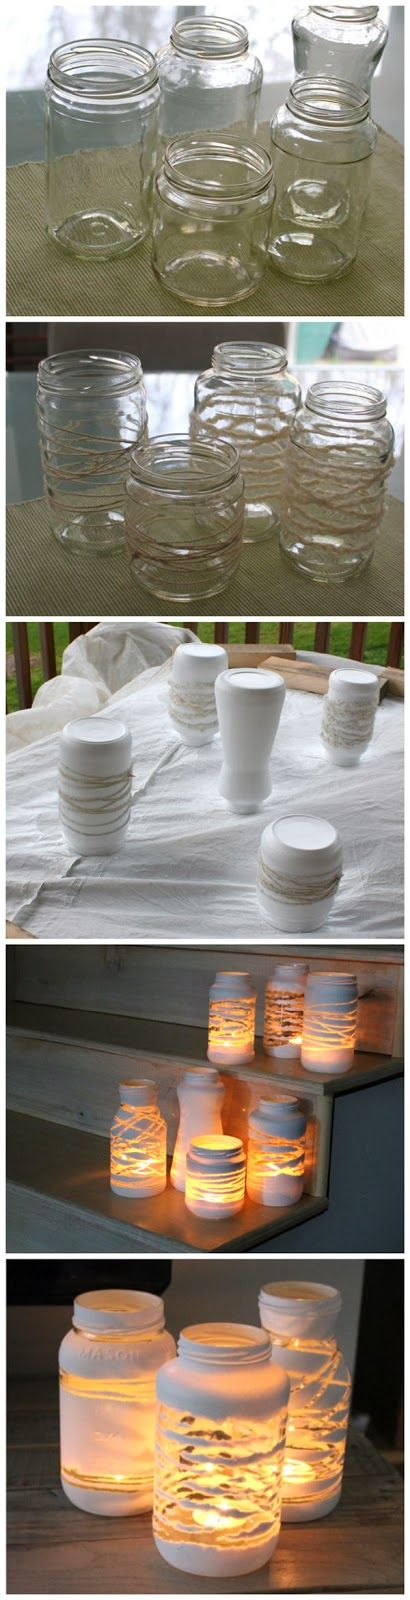 marmeladengl ser als teelicht mit faden band umwickelt angemalt yarn wrapped painted jars. Black Bedroom Furniture Sets. Home Design Ideas